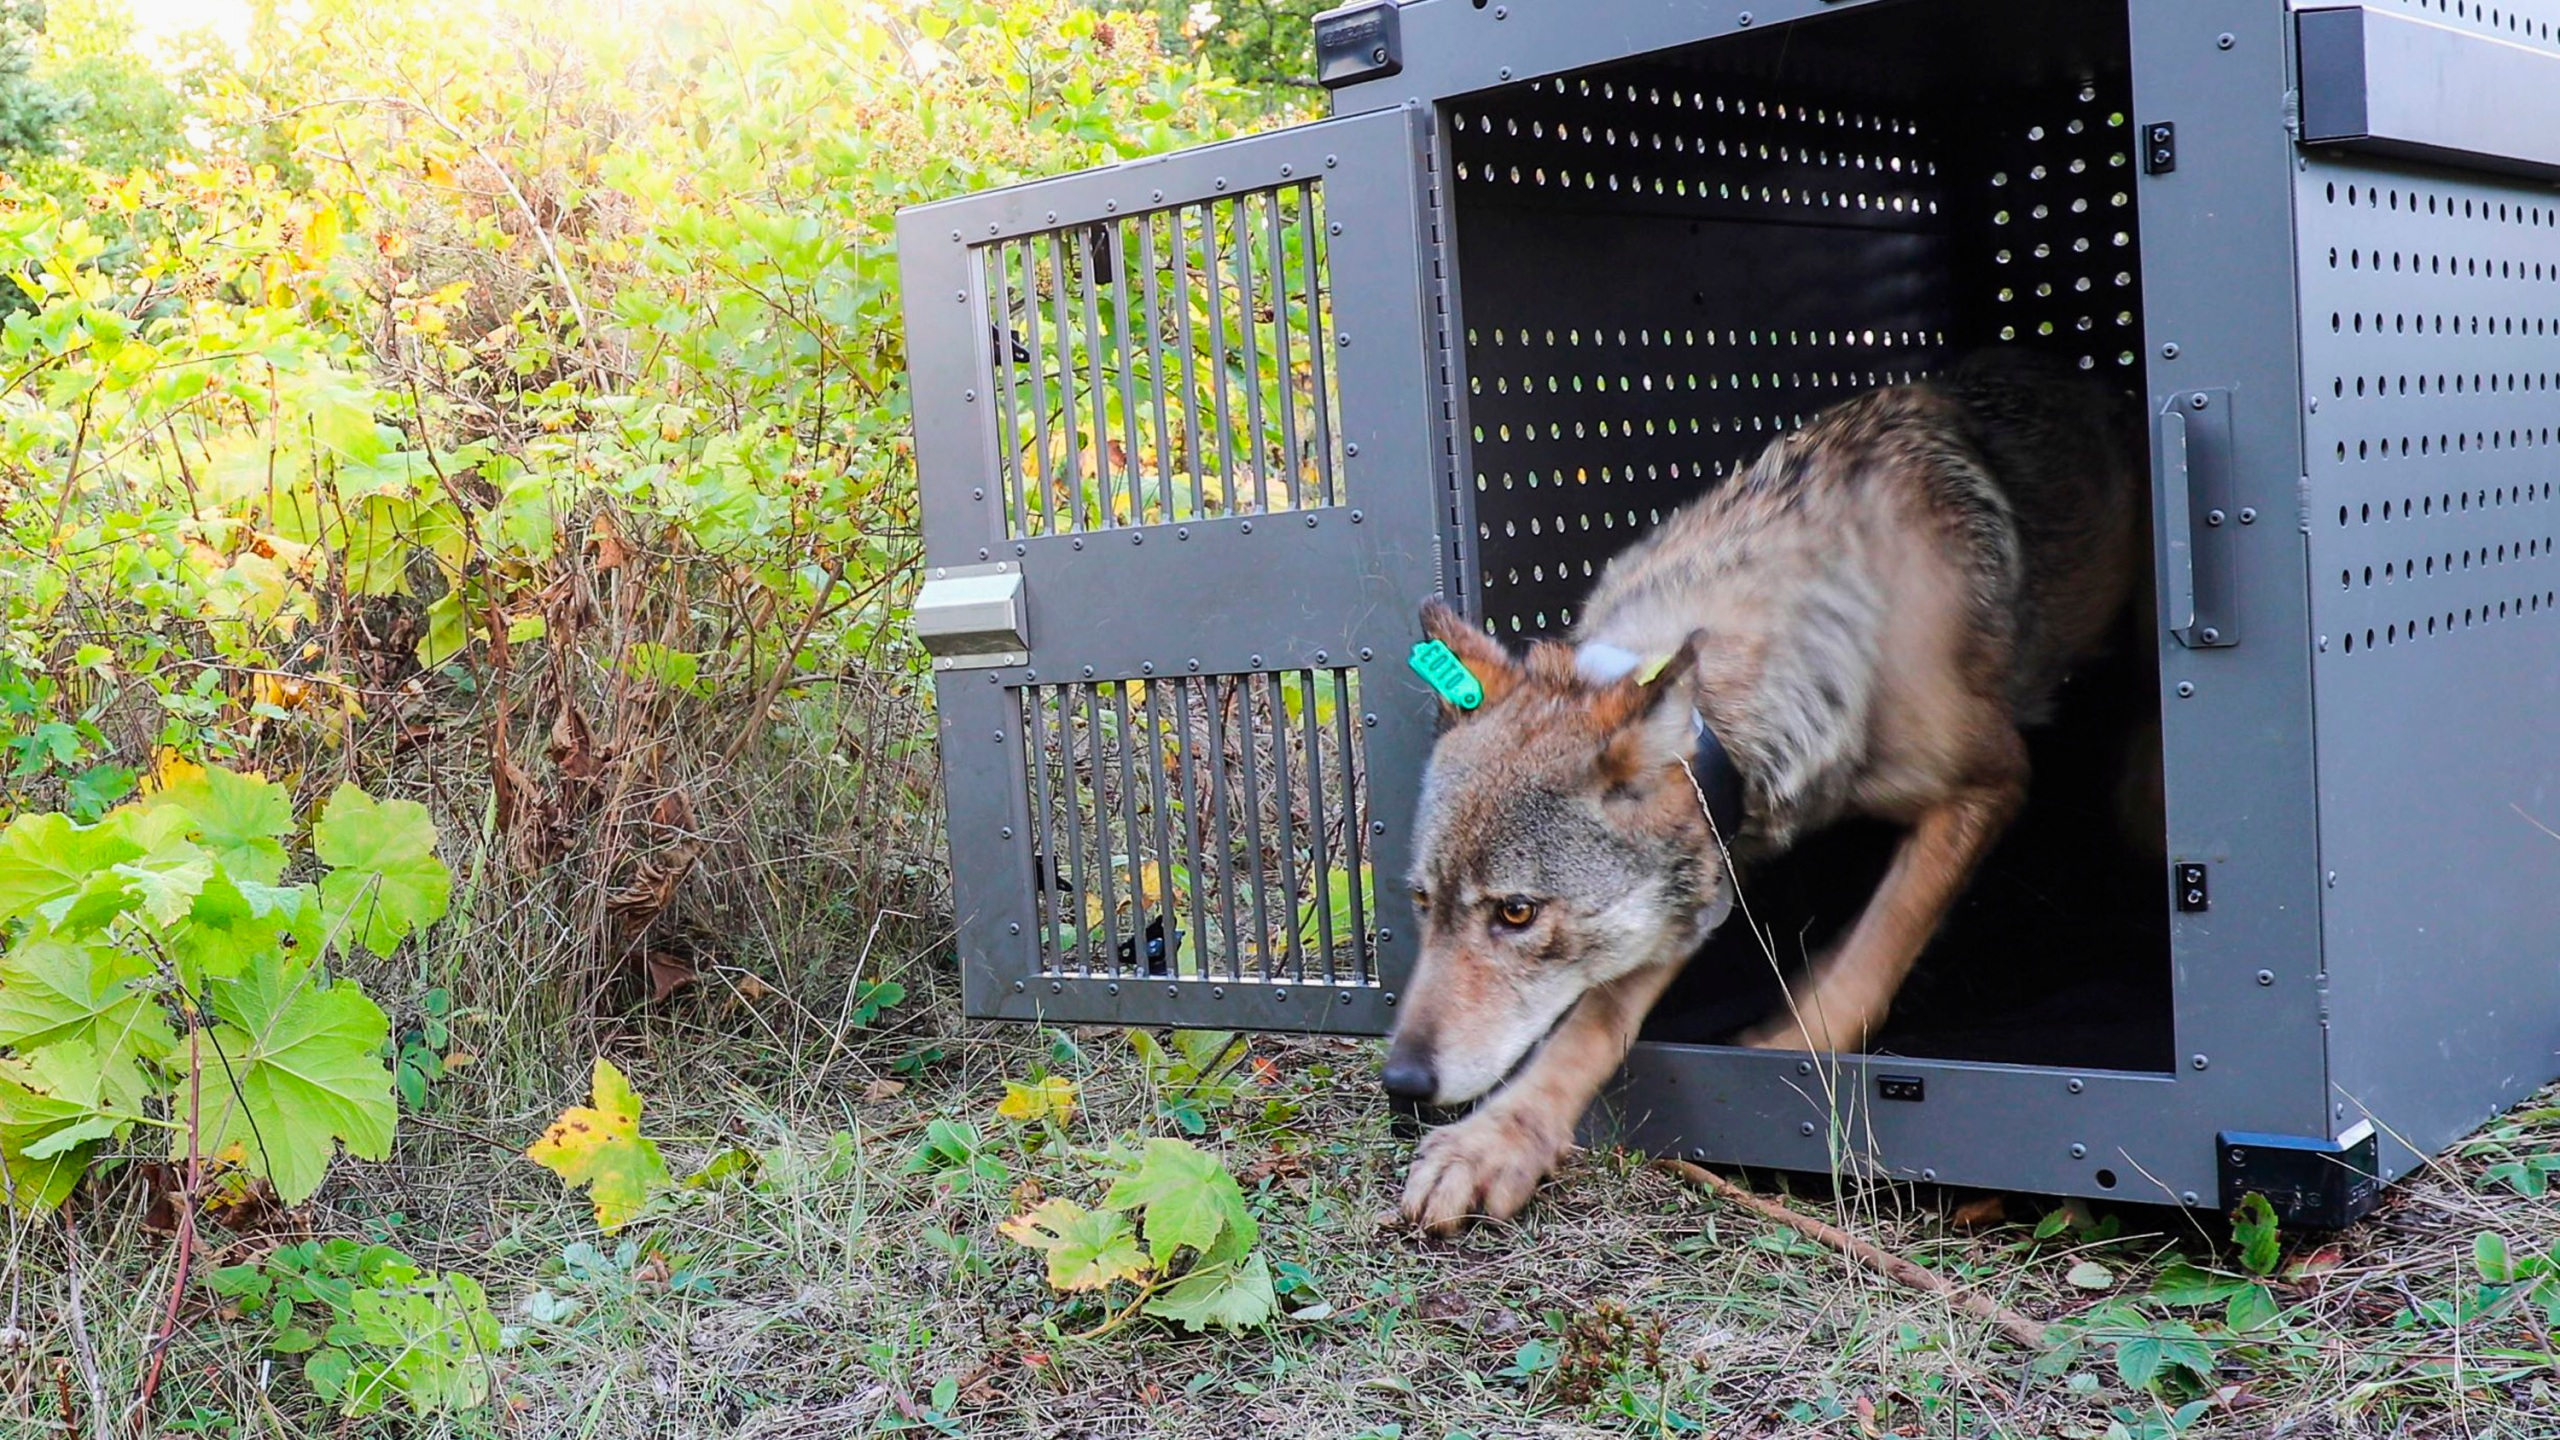 A 4-year-old female gray wolf emerges from her cage as it is released at Isle Royale National Park in Michigan on Sept. 26, 2018, in this photo provided by the National Park Service.